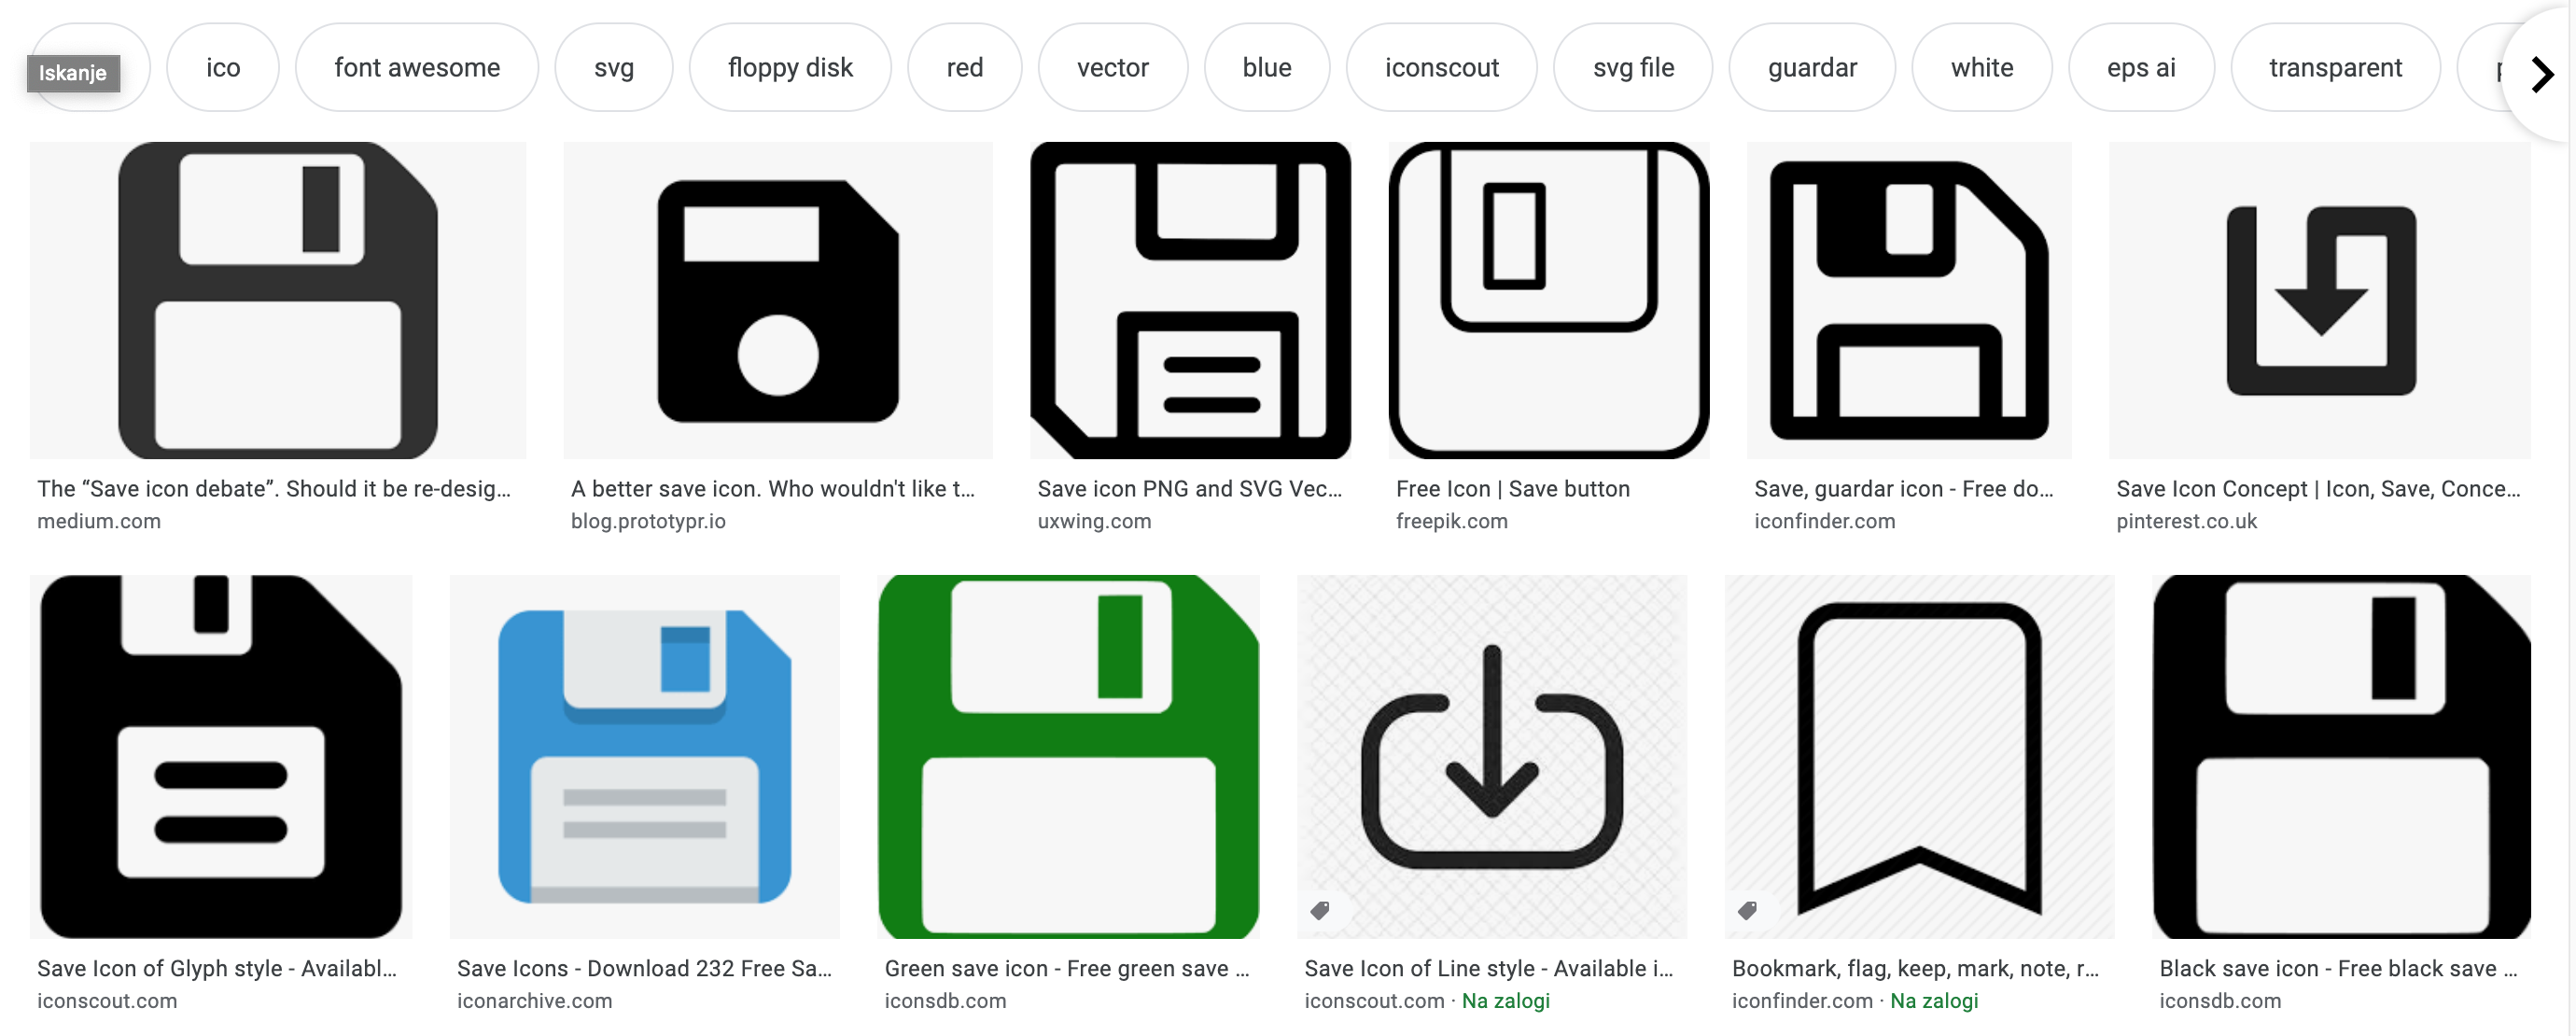 Enhancing recognition of web icons